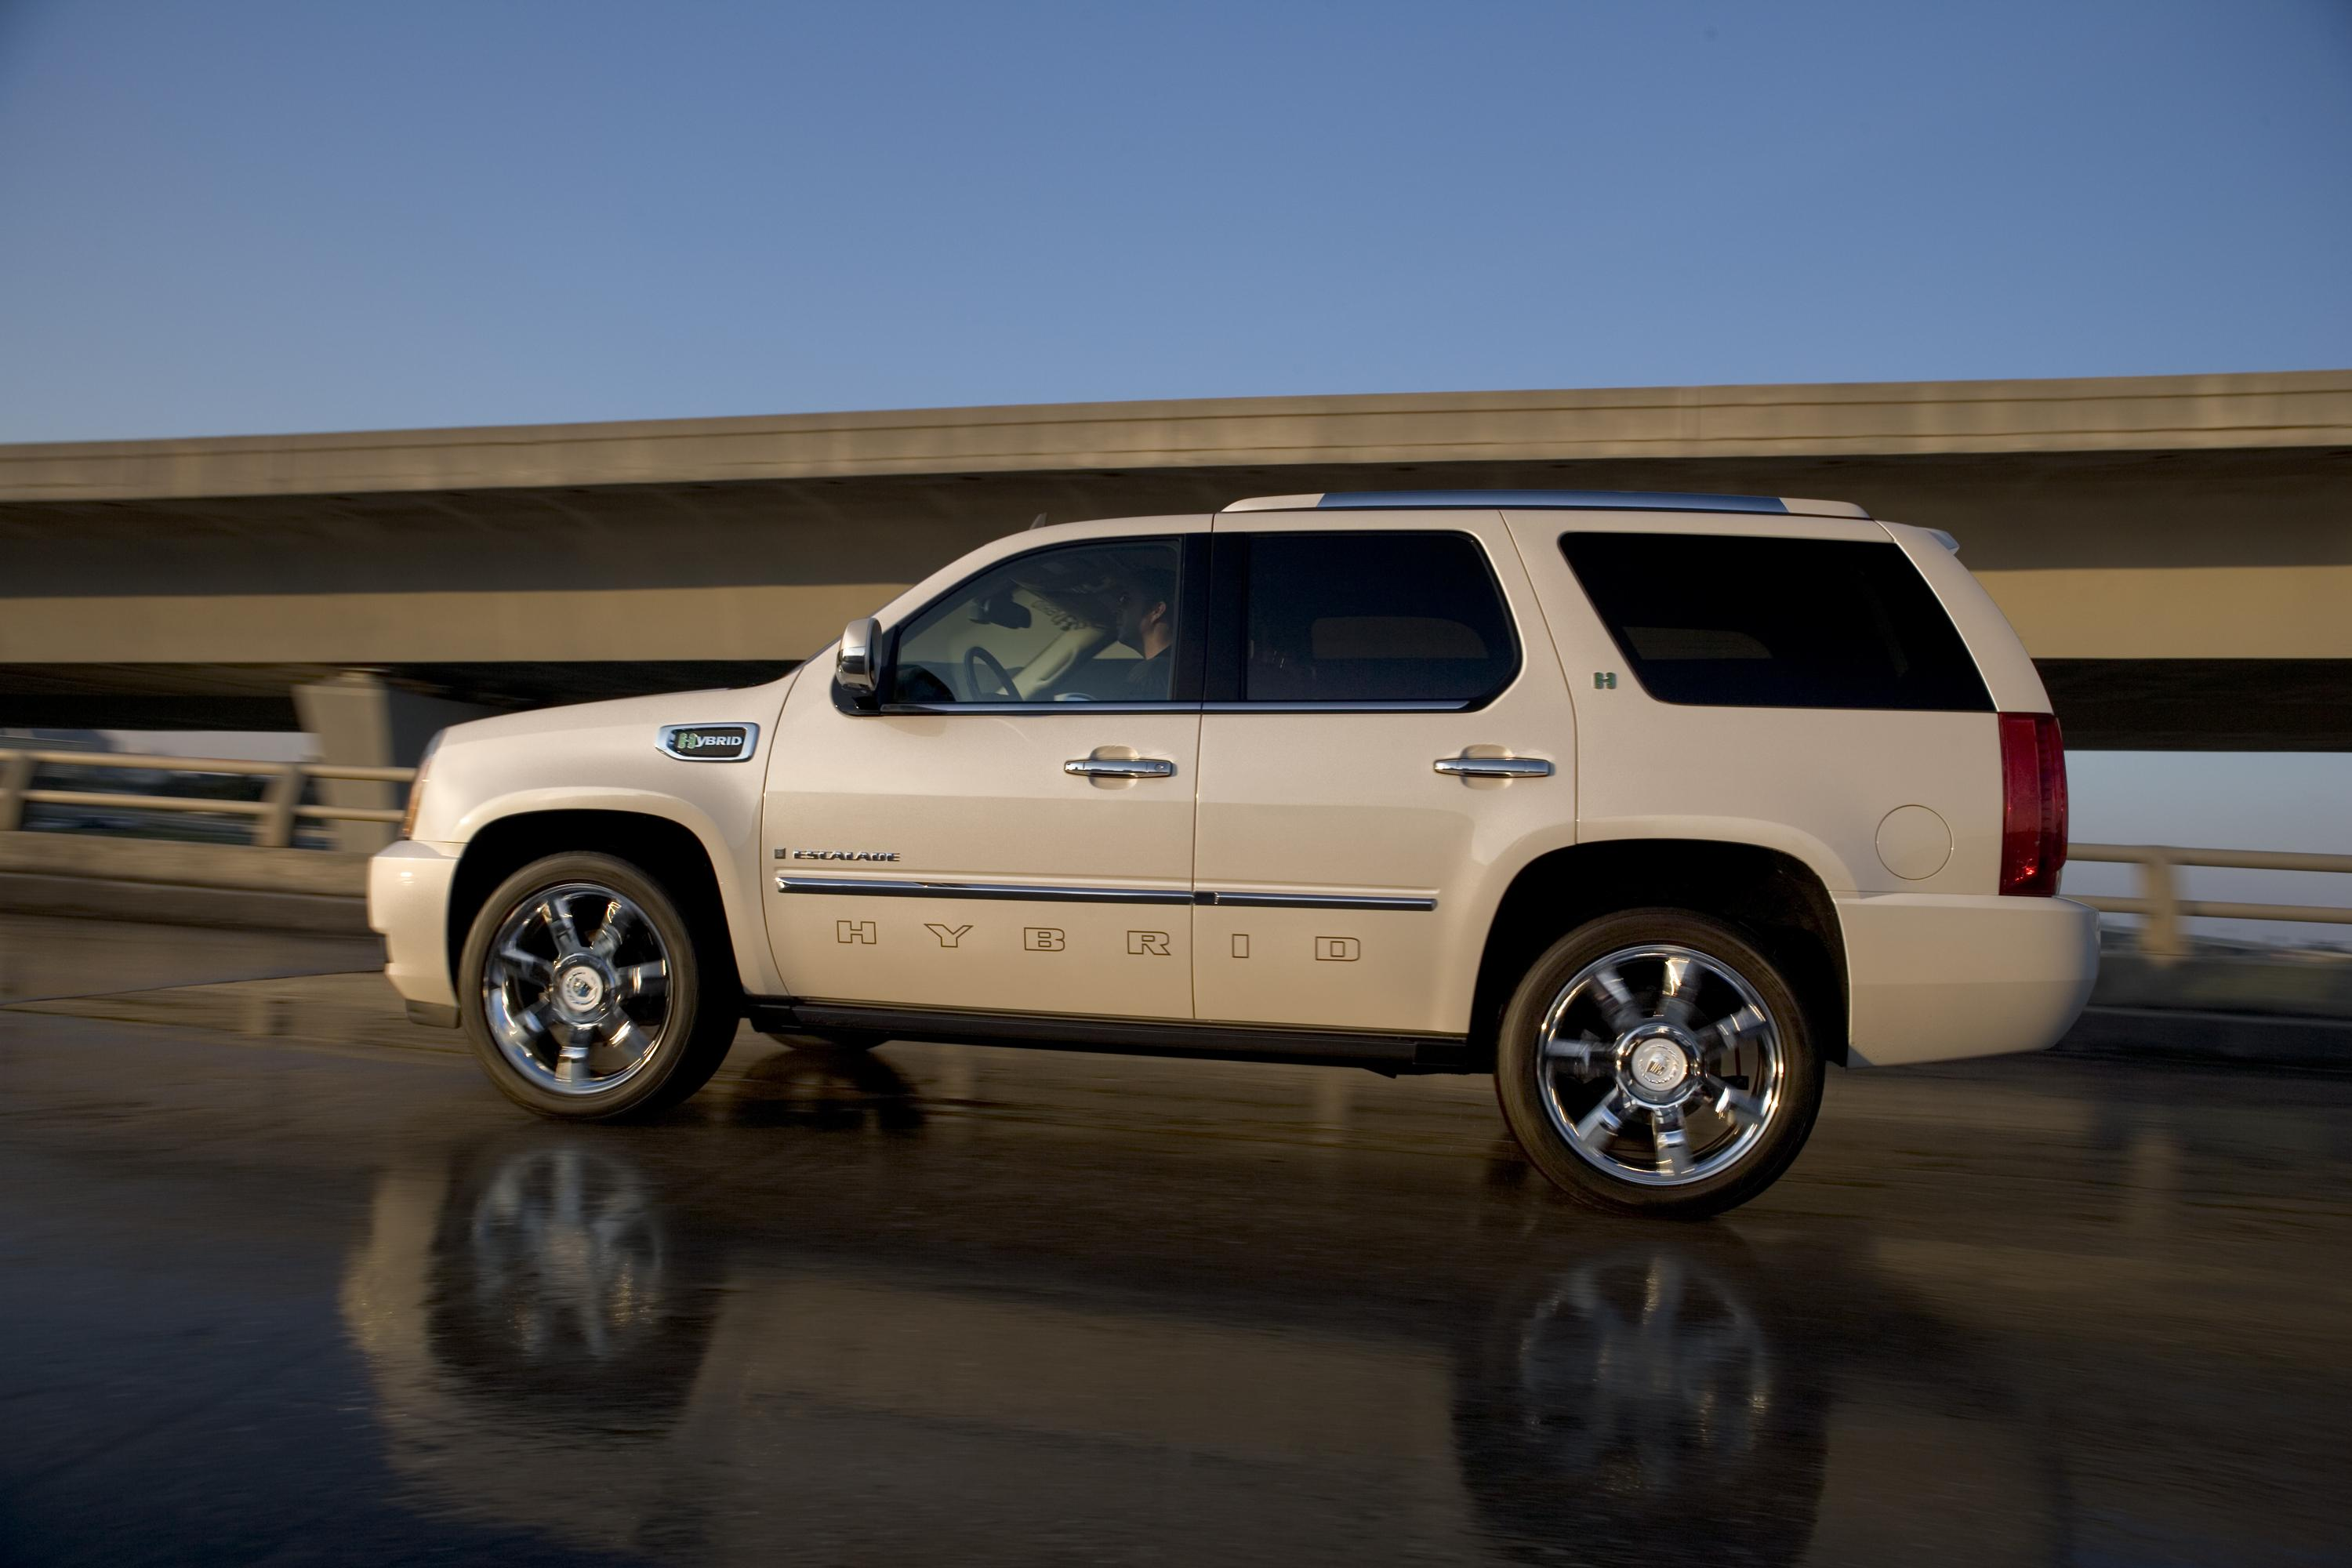 cadillac see carpet can photo that escalade here of customs interior some img highlights we match first upgrades replaced runs in accessories you molding findlay throughout to stock brown the